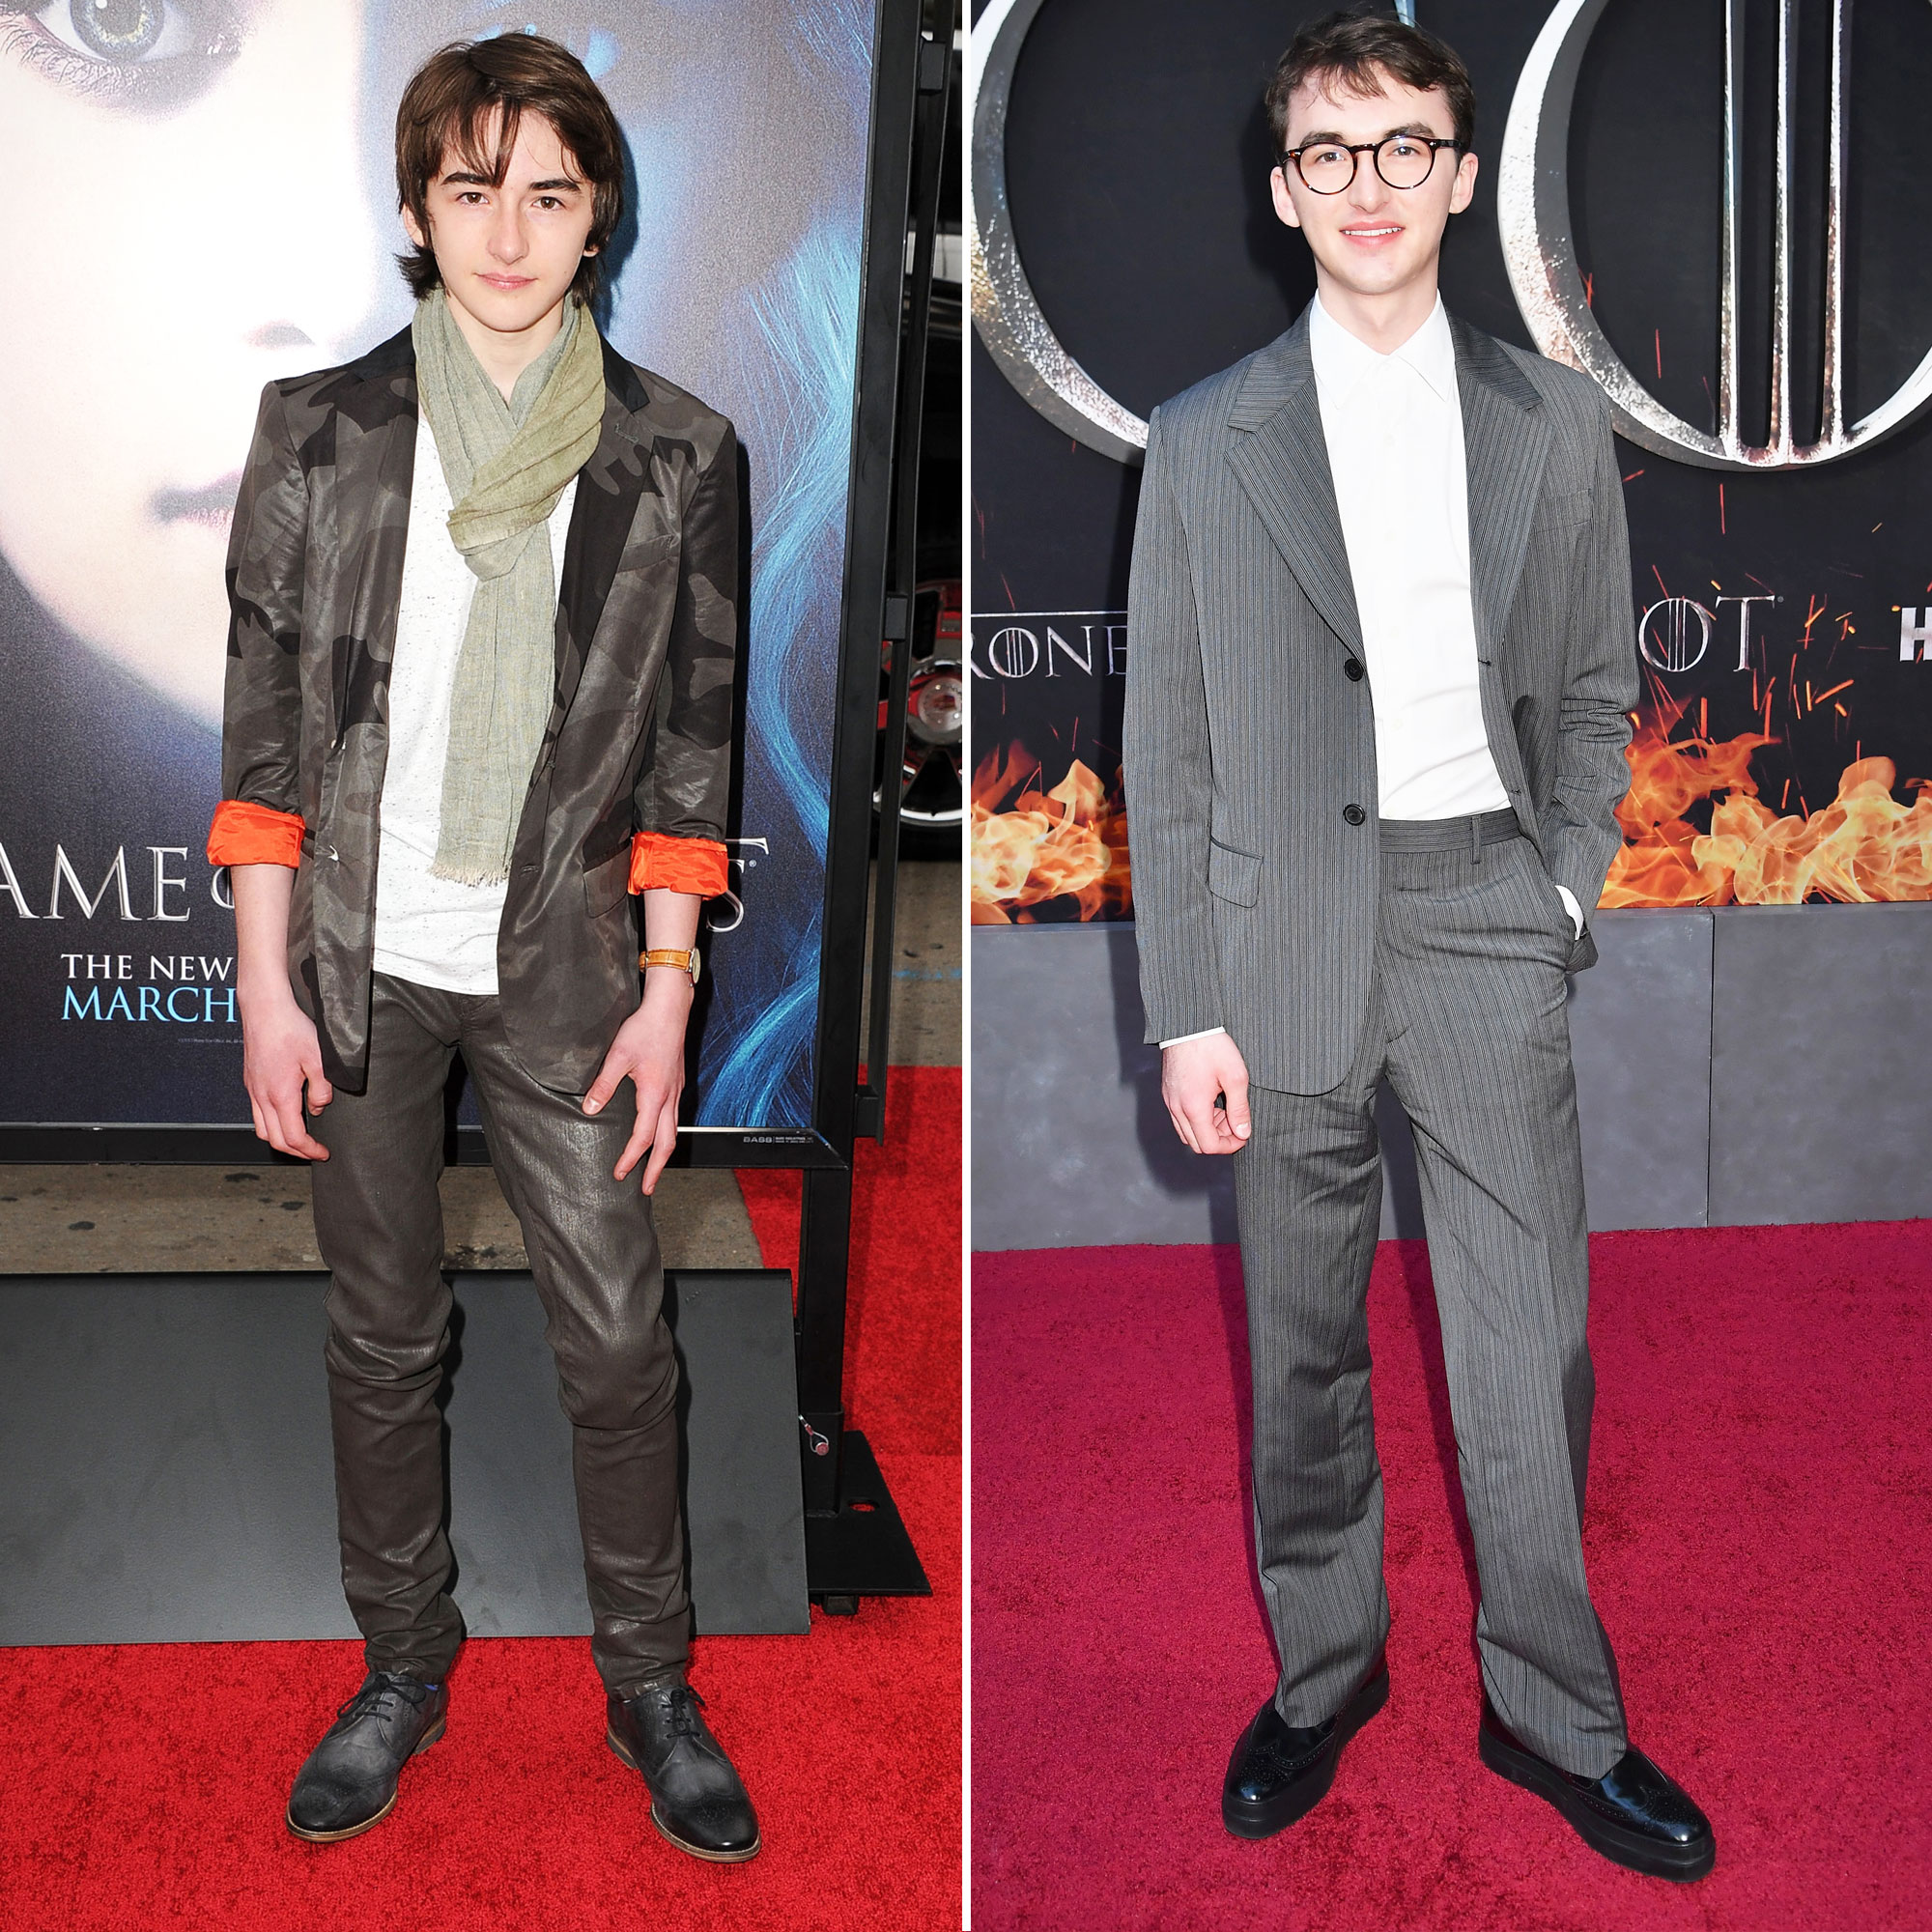 Isaac Hempstead Wright 'Game of Thrones' Stars: From the First 'GoT' Red Carpet Premiere to the Last - The youngest of the living Stark siblings (R.I.P. Rickon) was only 12 years old when the first episode aired. Now, he's part of the twentysomething club!